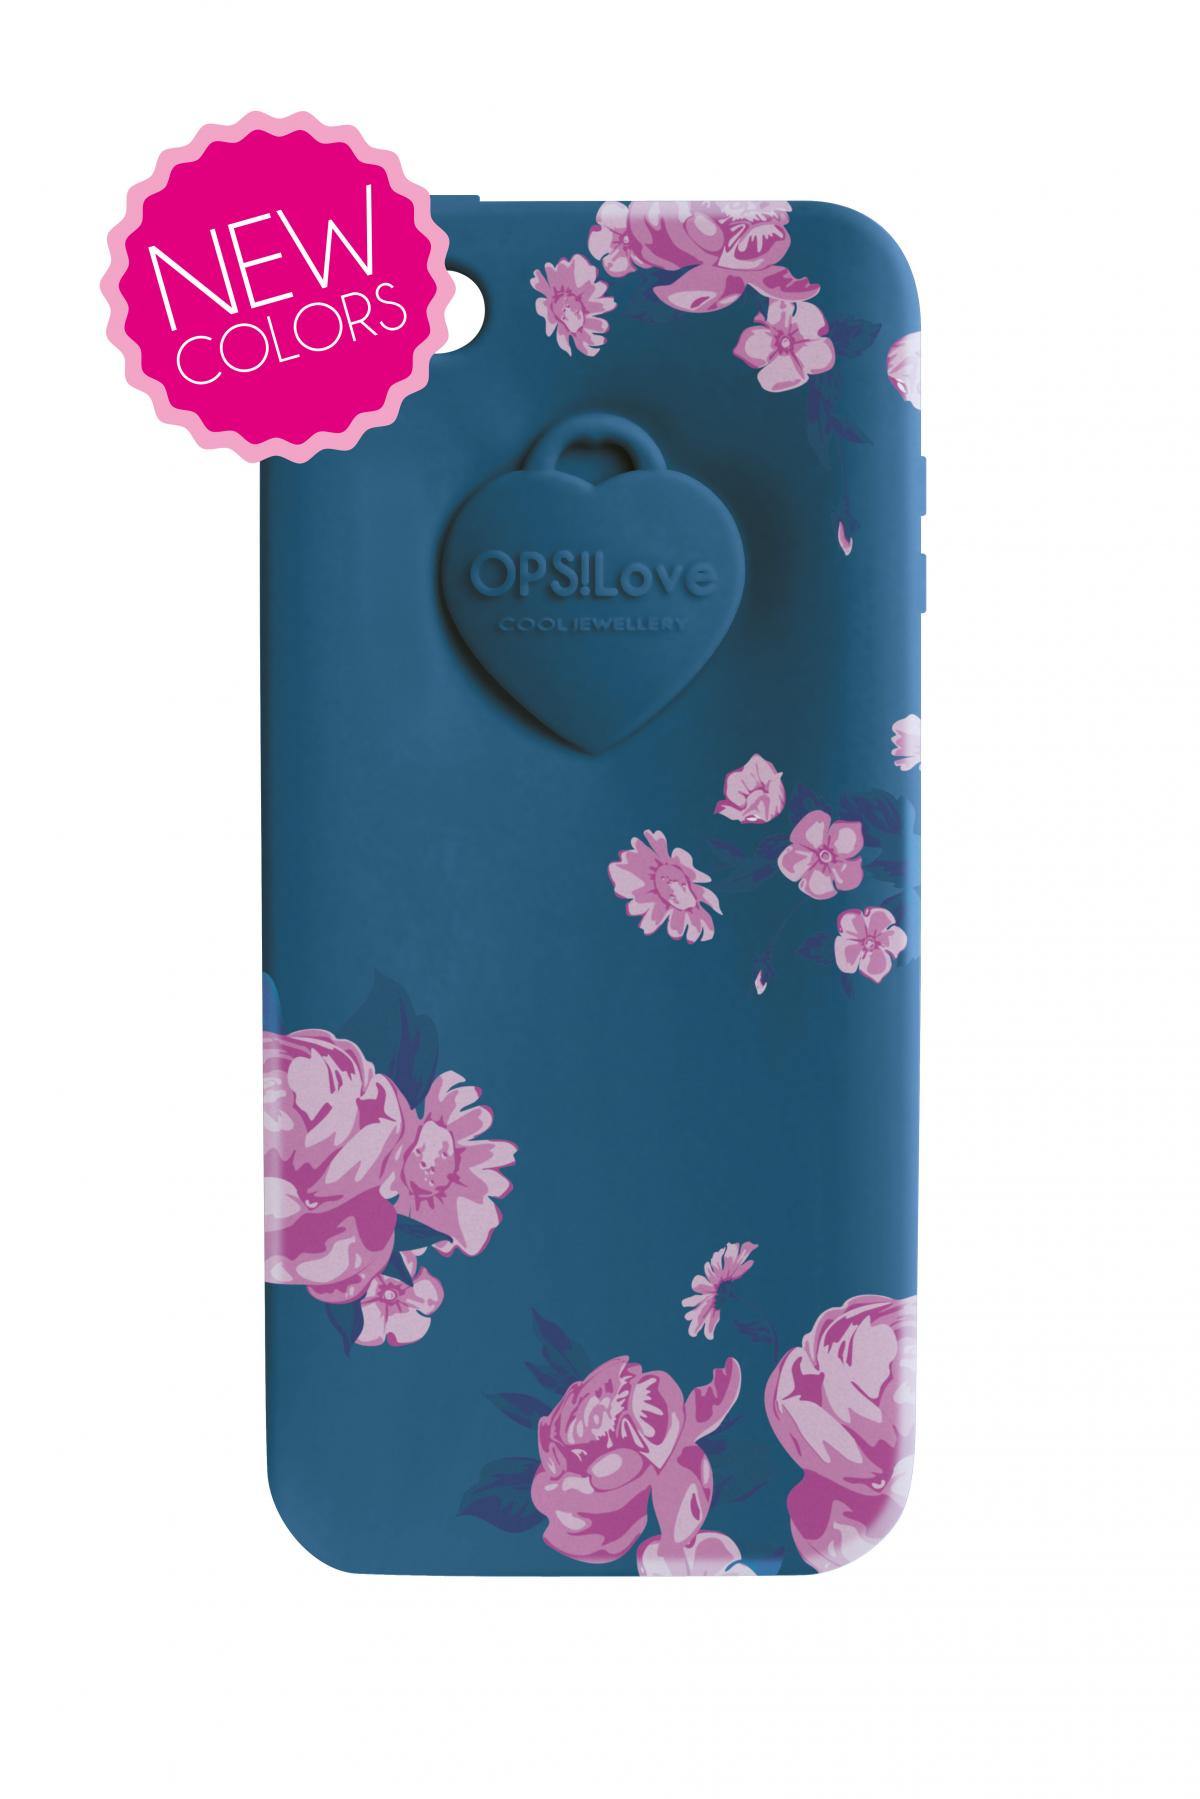 Cover ops-flower-blu-Clessidra Jewels